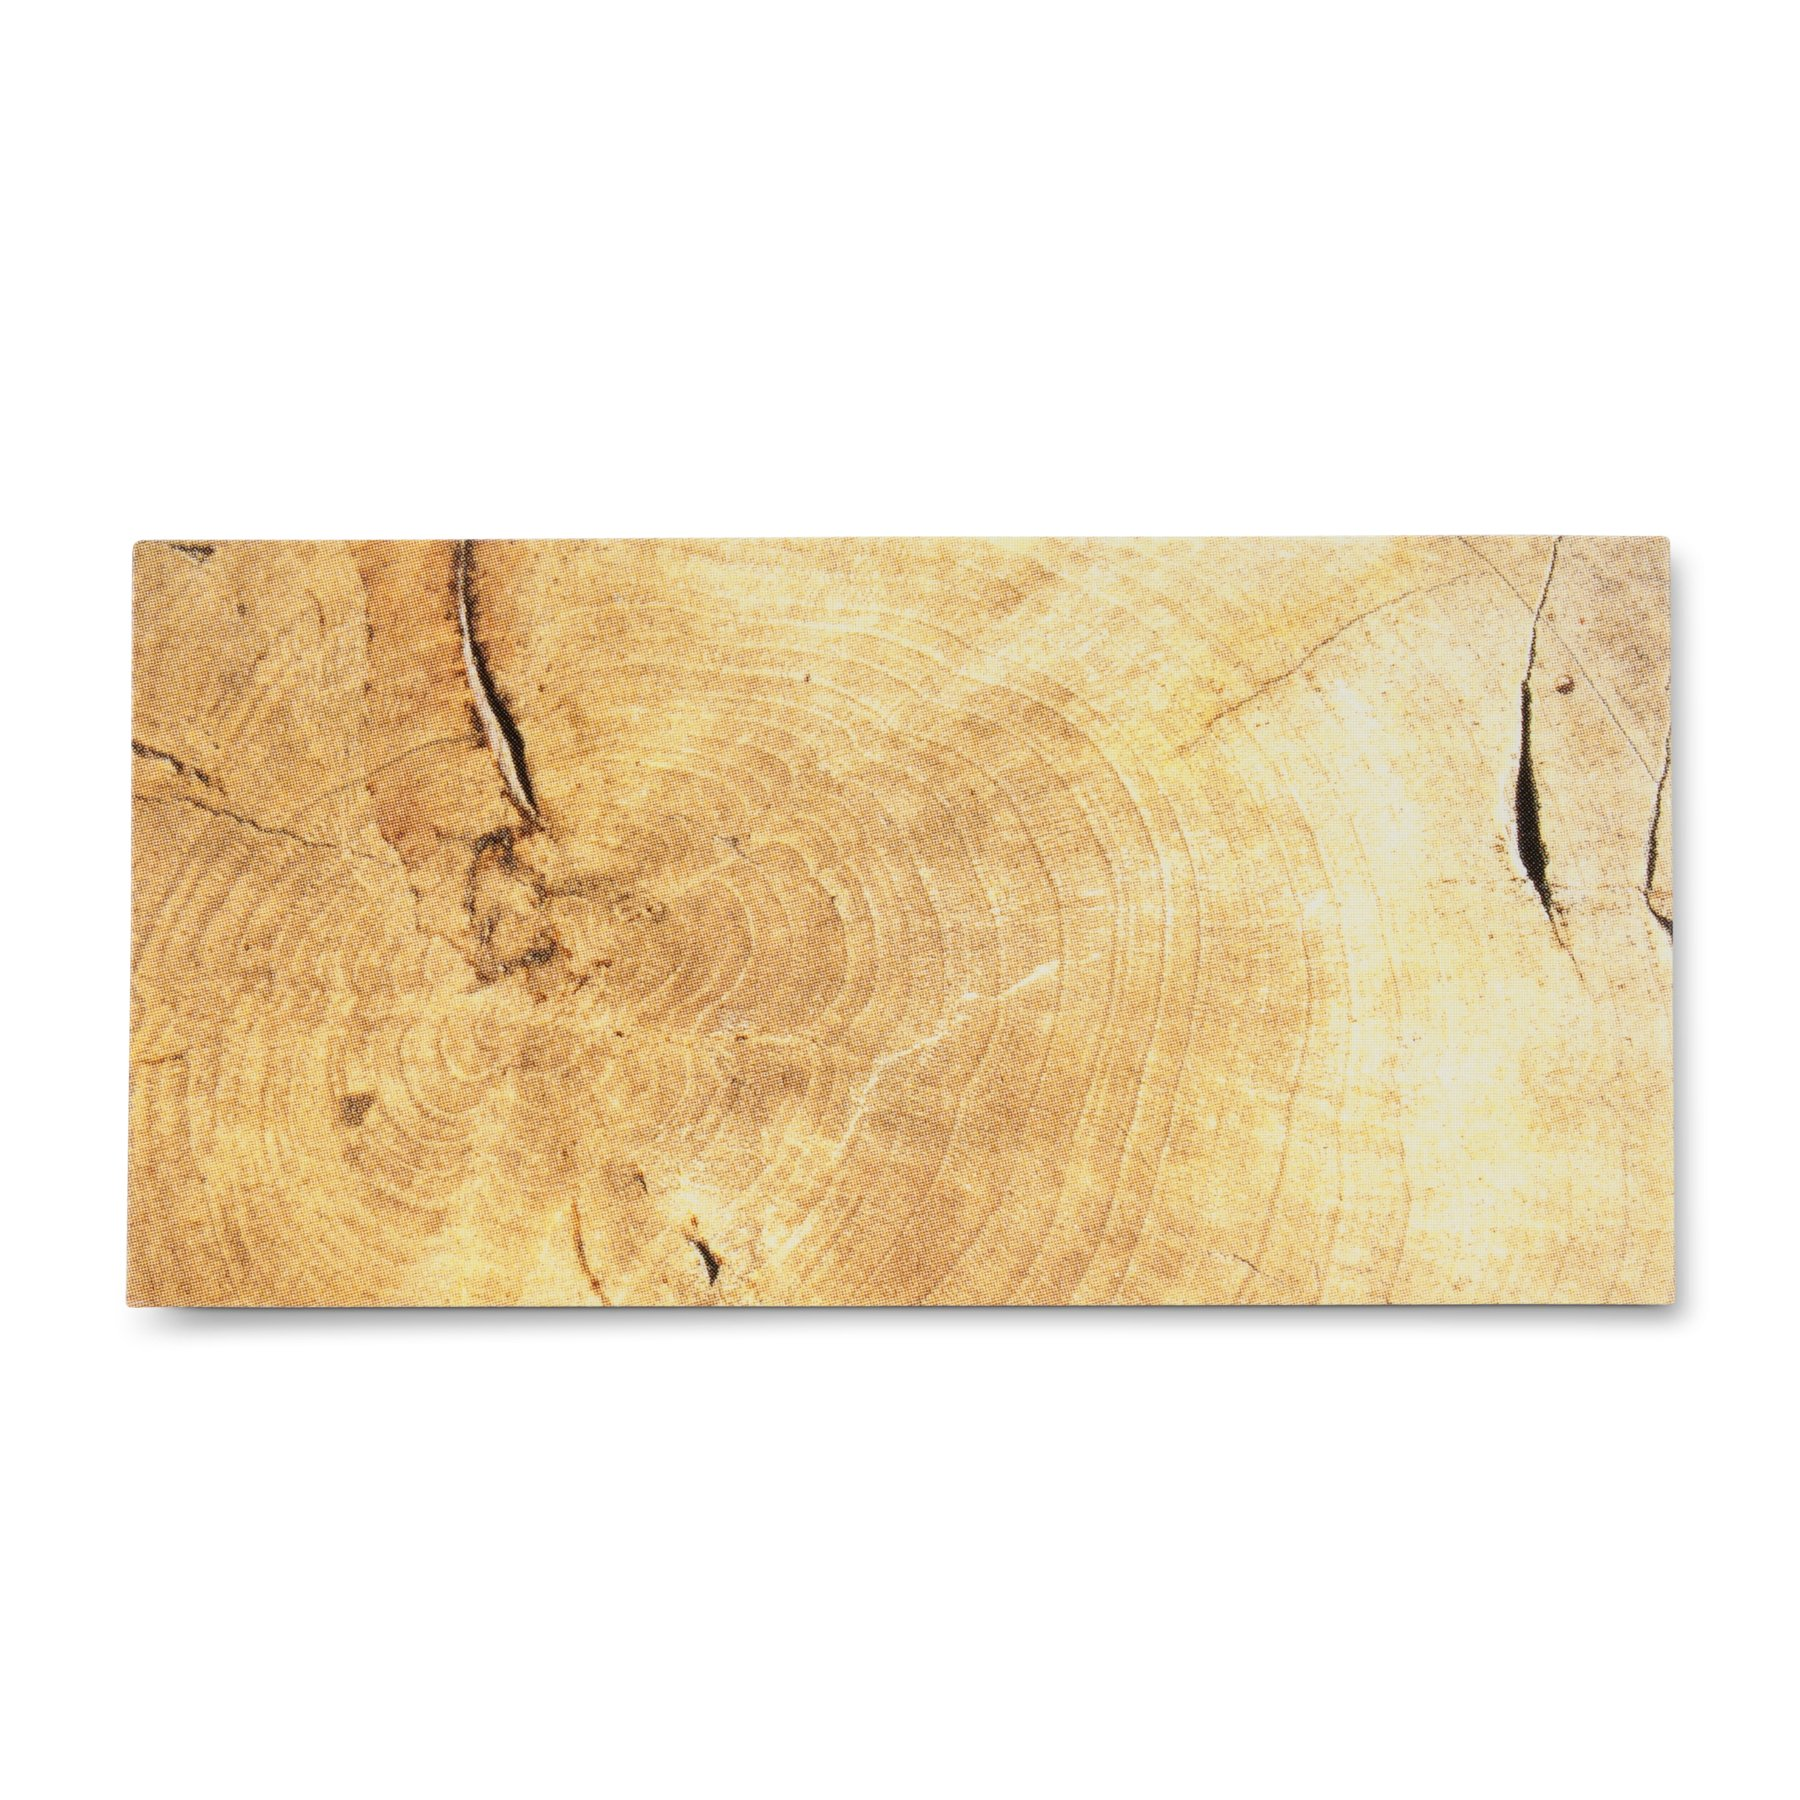 Abbott Collection Wood Grain Place cards, Brown/Tan (Set of 24)